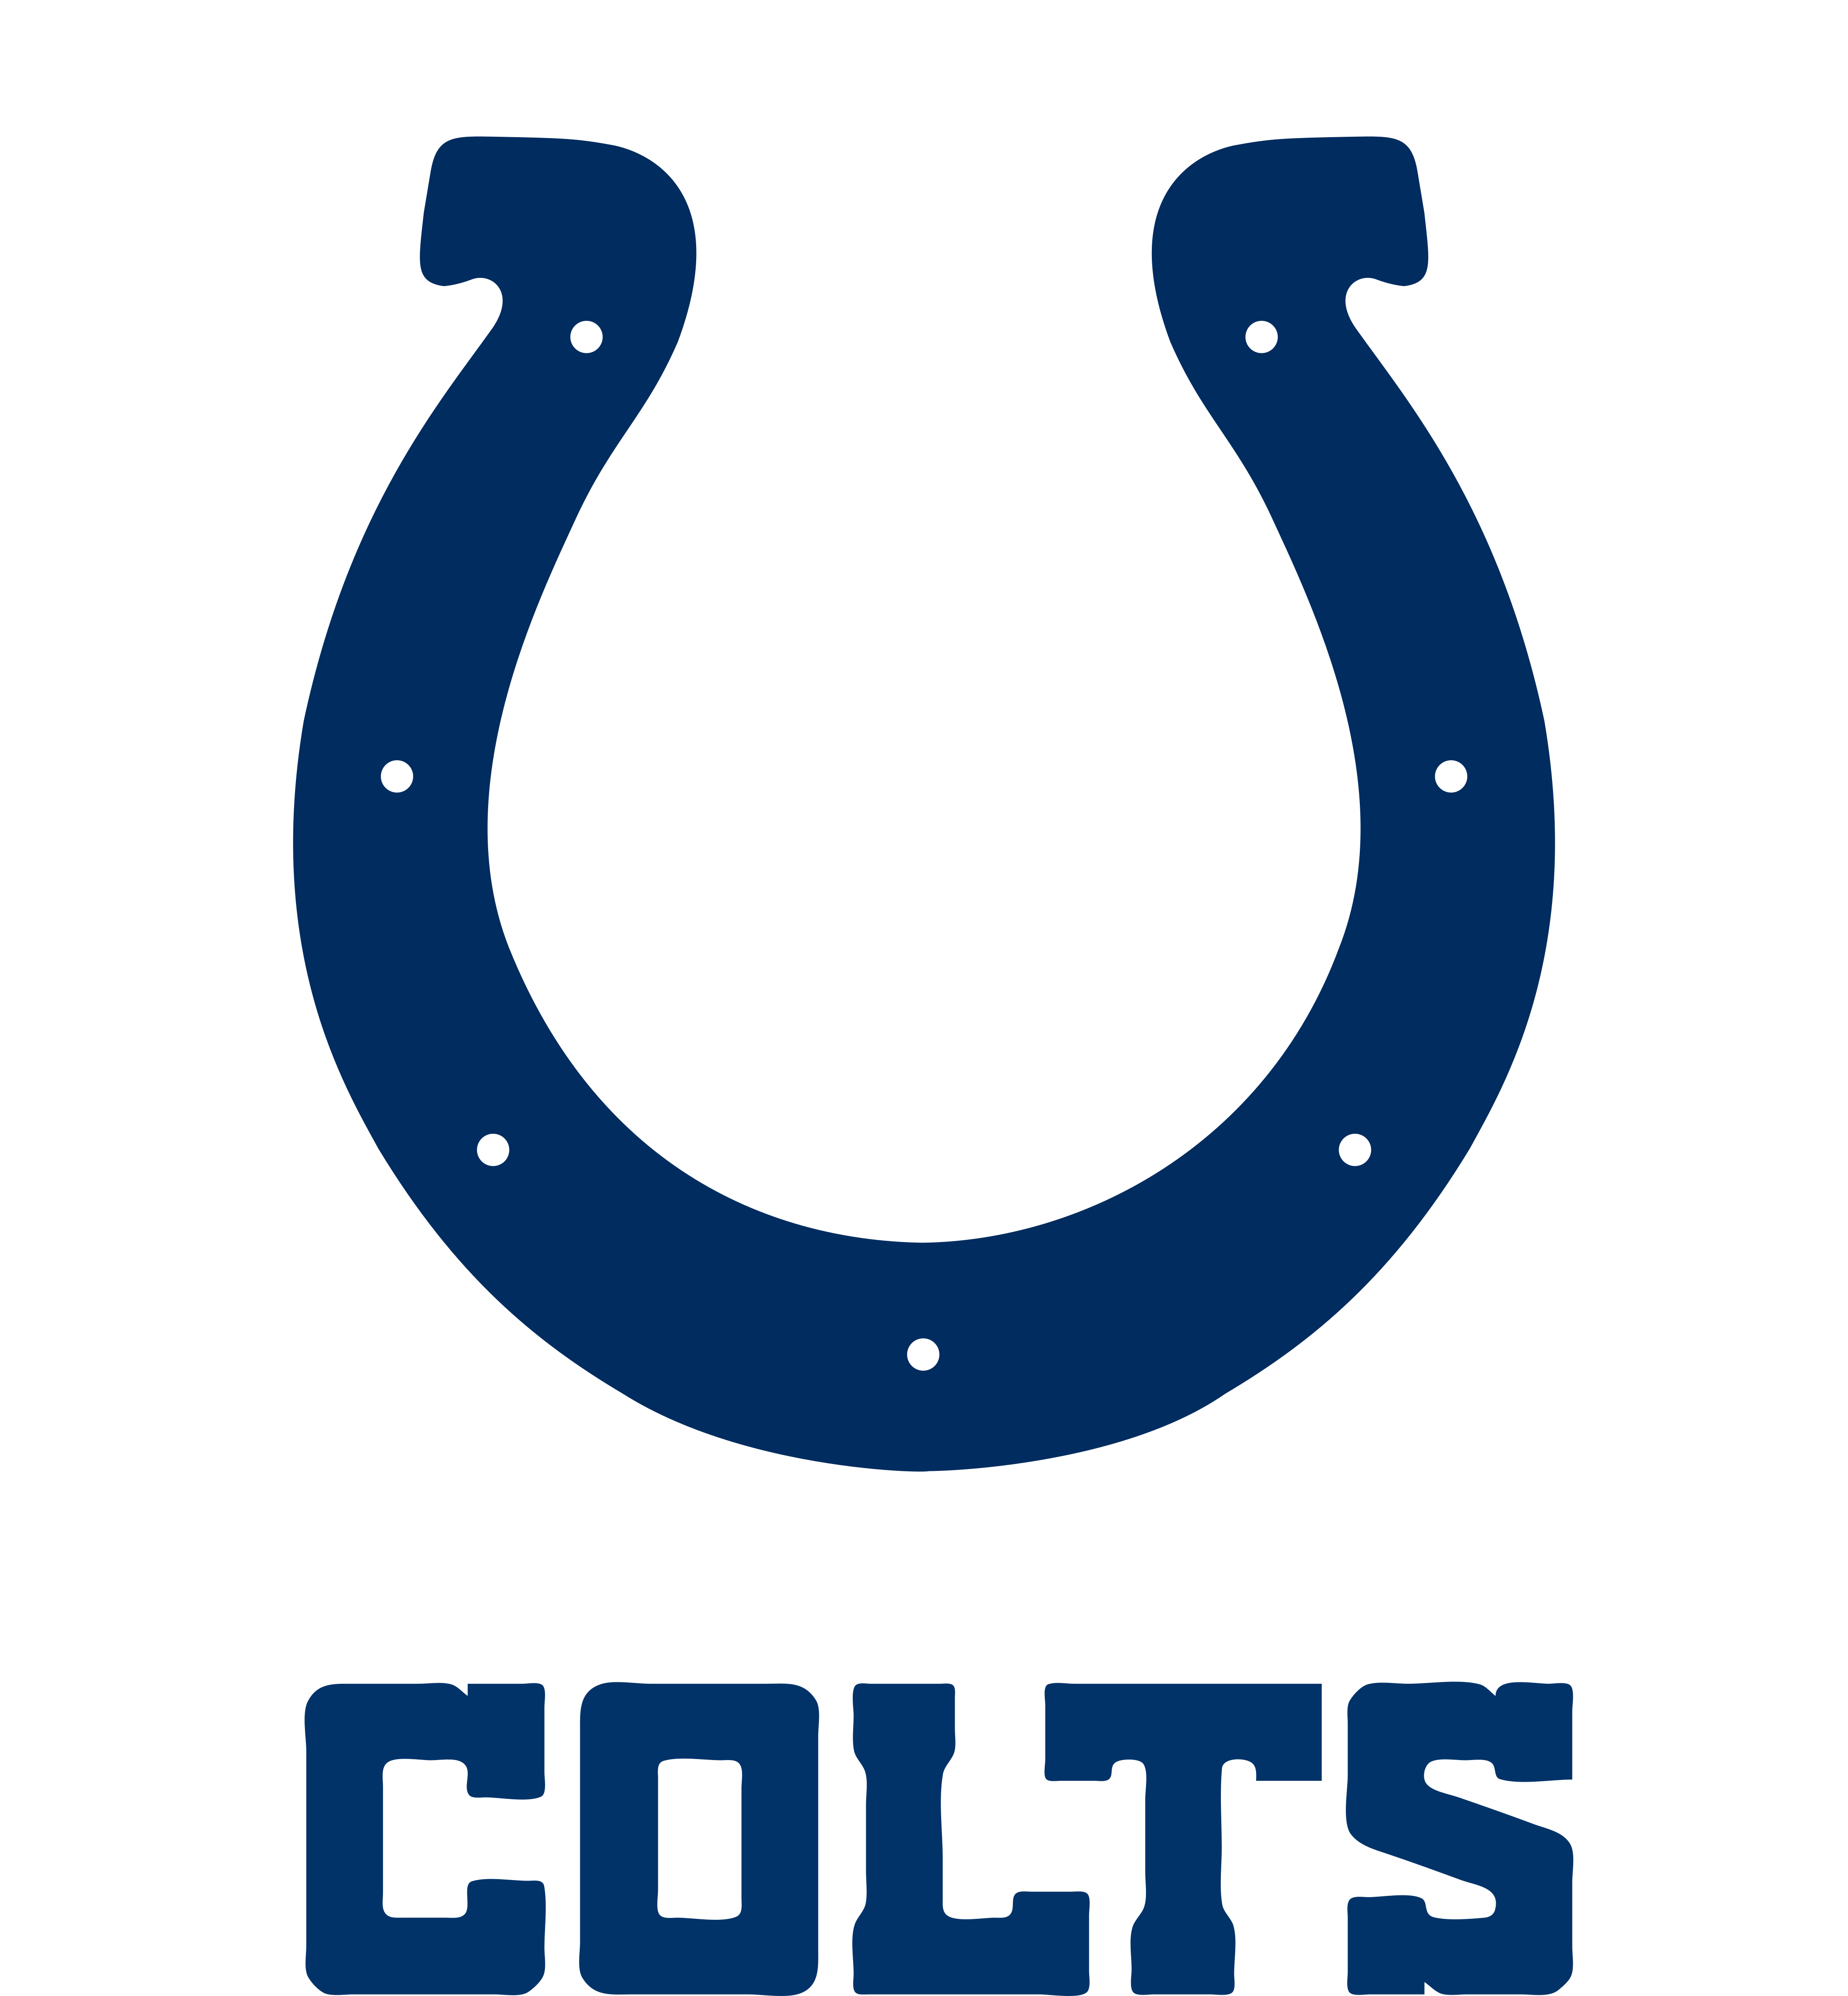 indianapolis colts logo 1 - Indianapolis Colts Logo